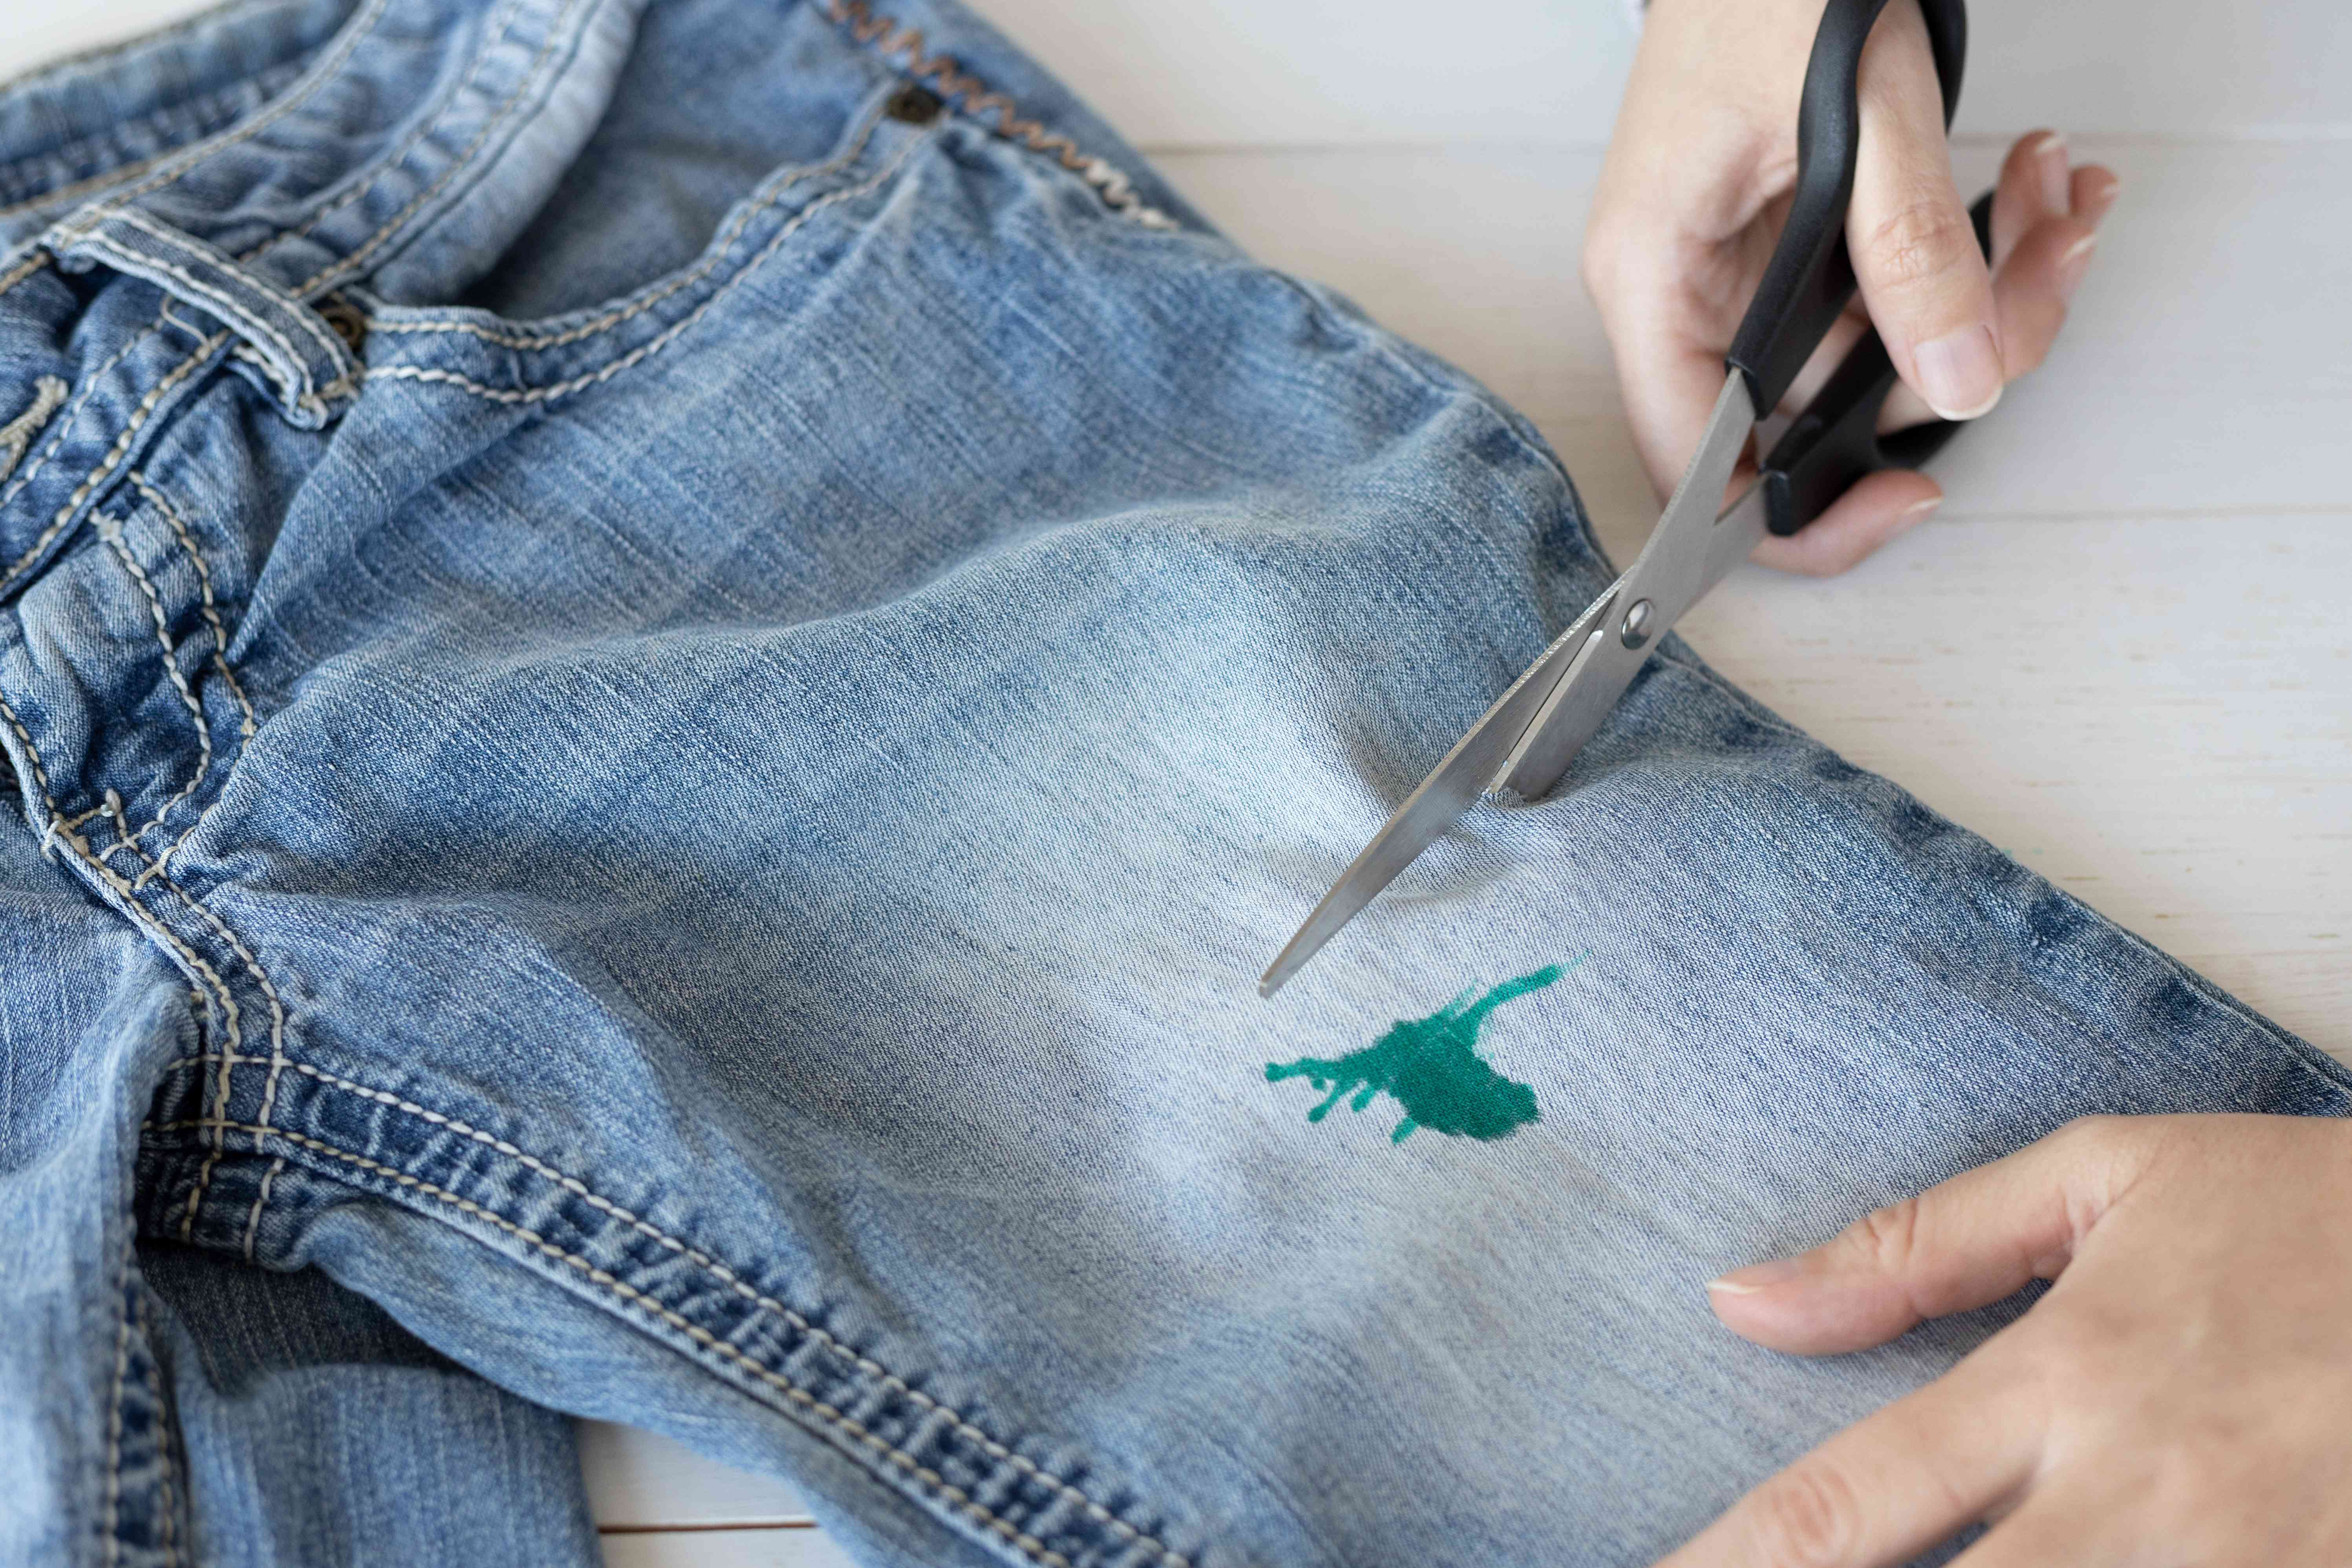 Jeans with green stain being cut off by scissors